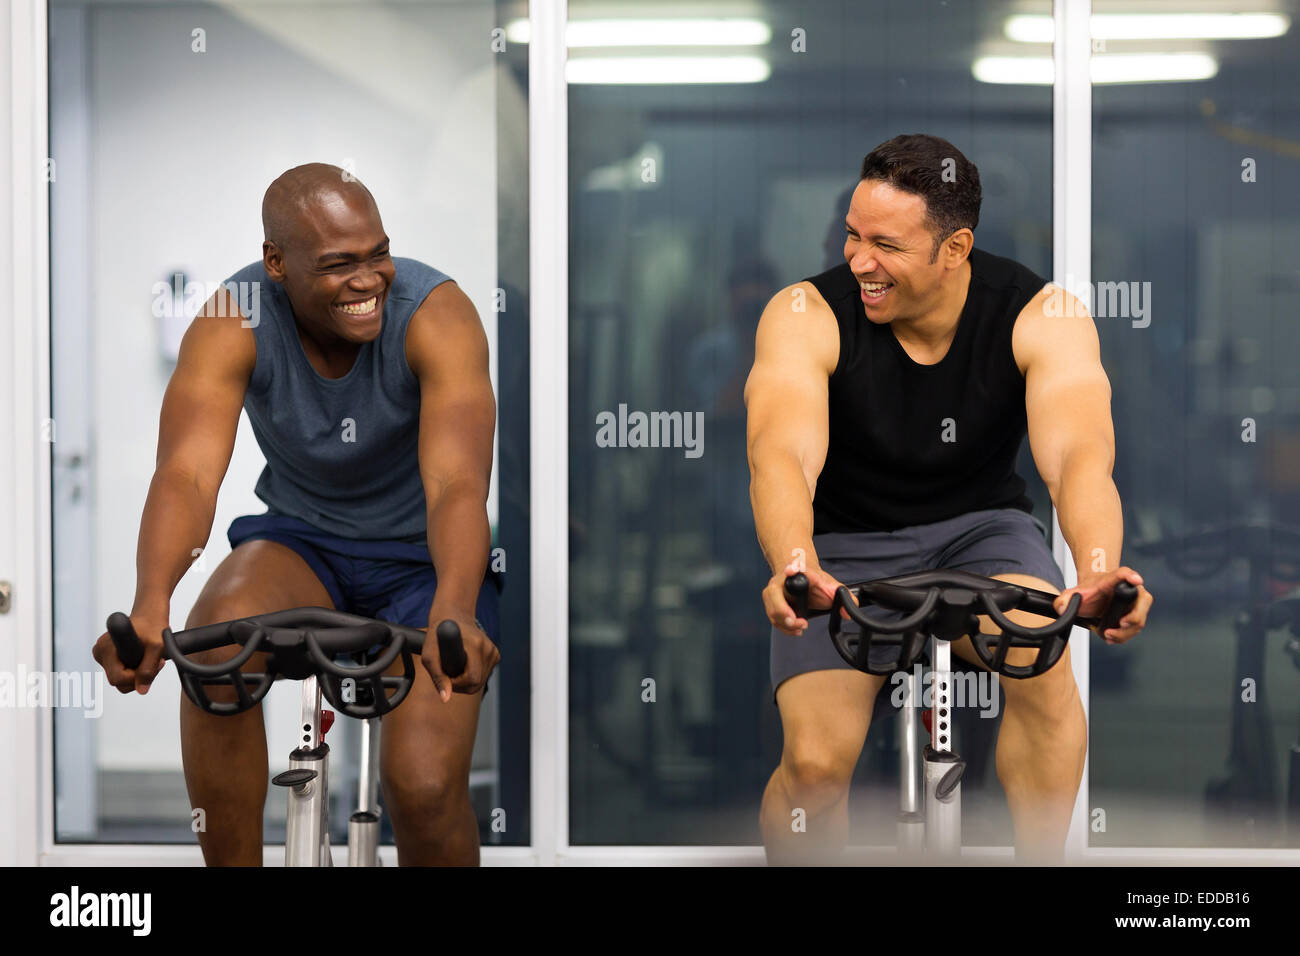 cheerful men working out in gym - Stock Image